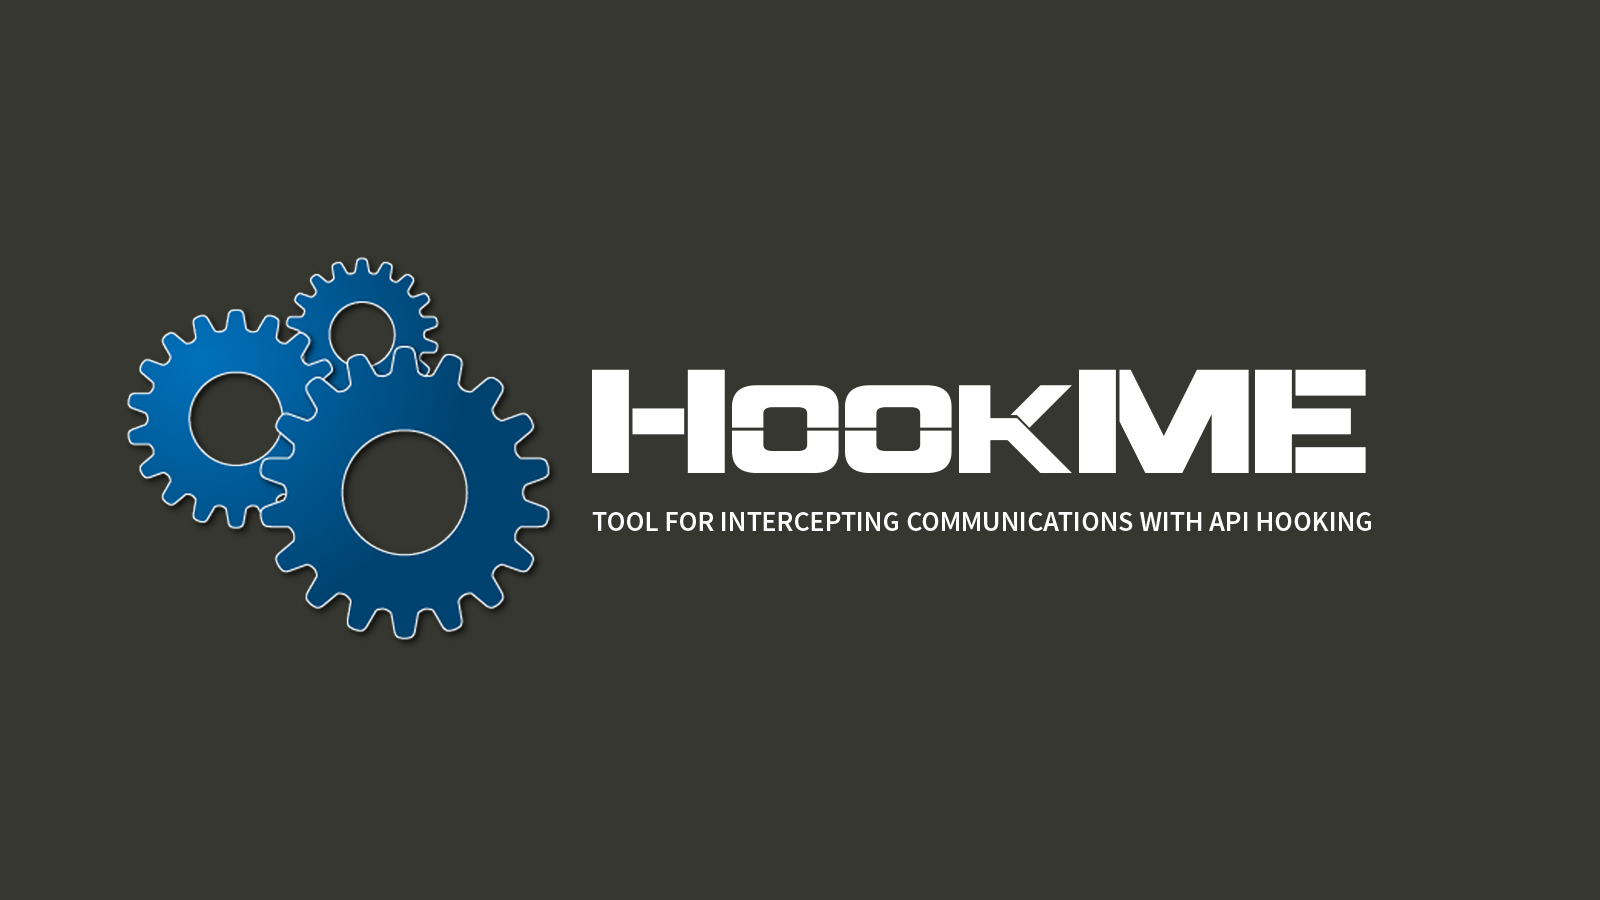 HookME - Tool For Intercepting Communications with API Hooking